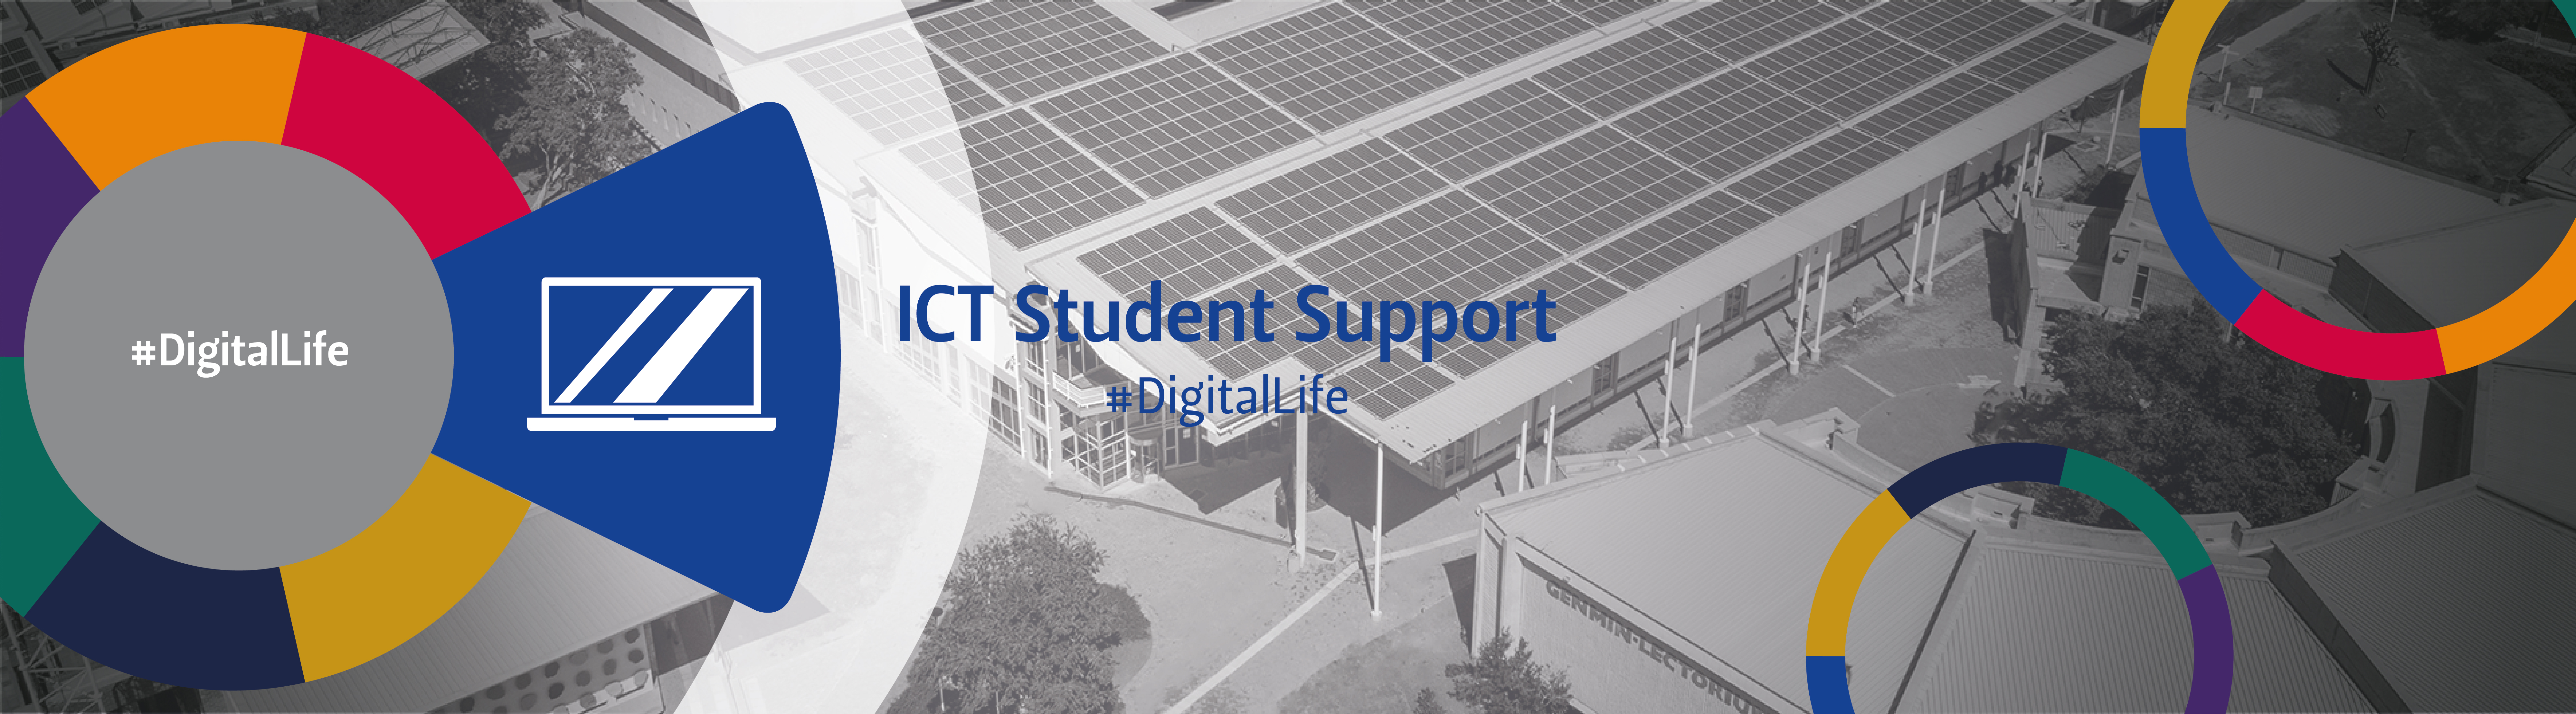 Digital Life ICT Student Support